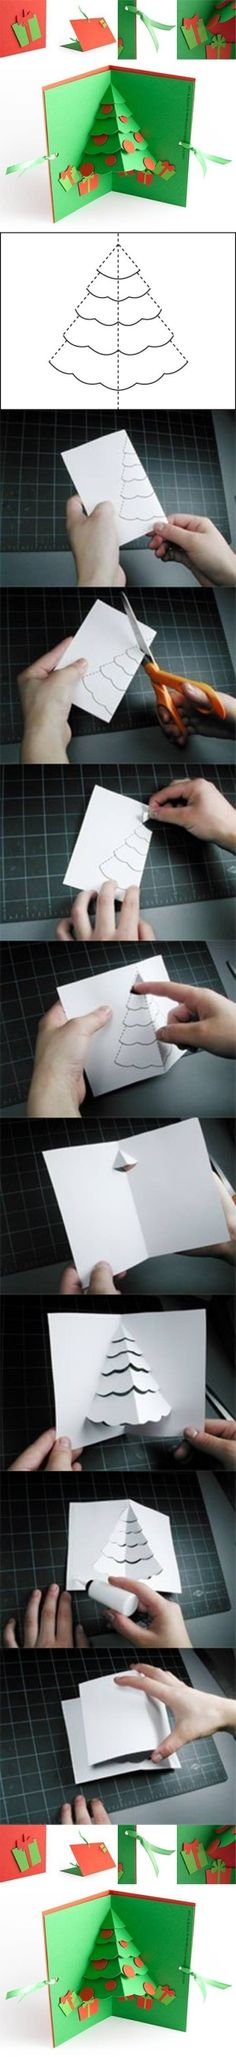 DIY Kerstboom Pop Up Card DIY Kerstboom Pop Up Kaart door diyforever